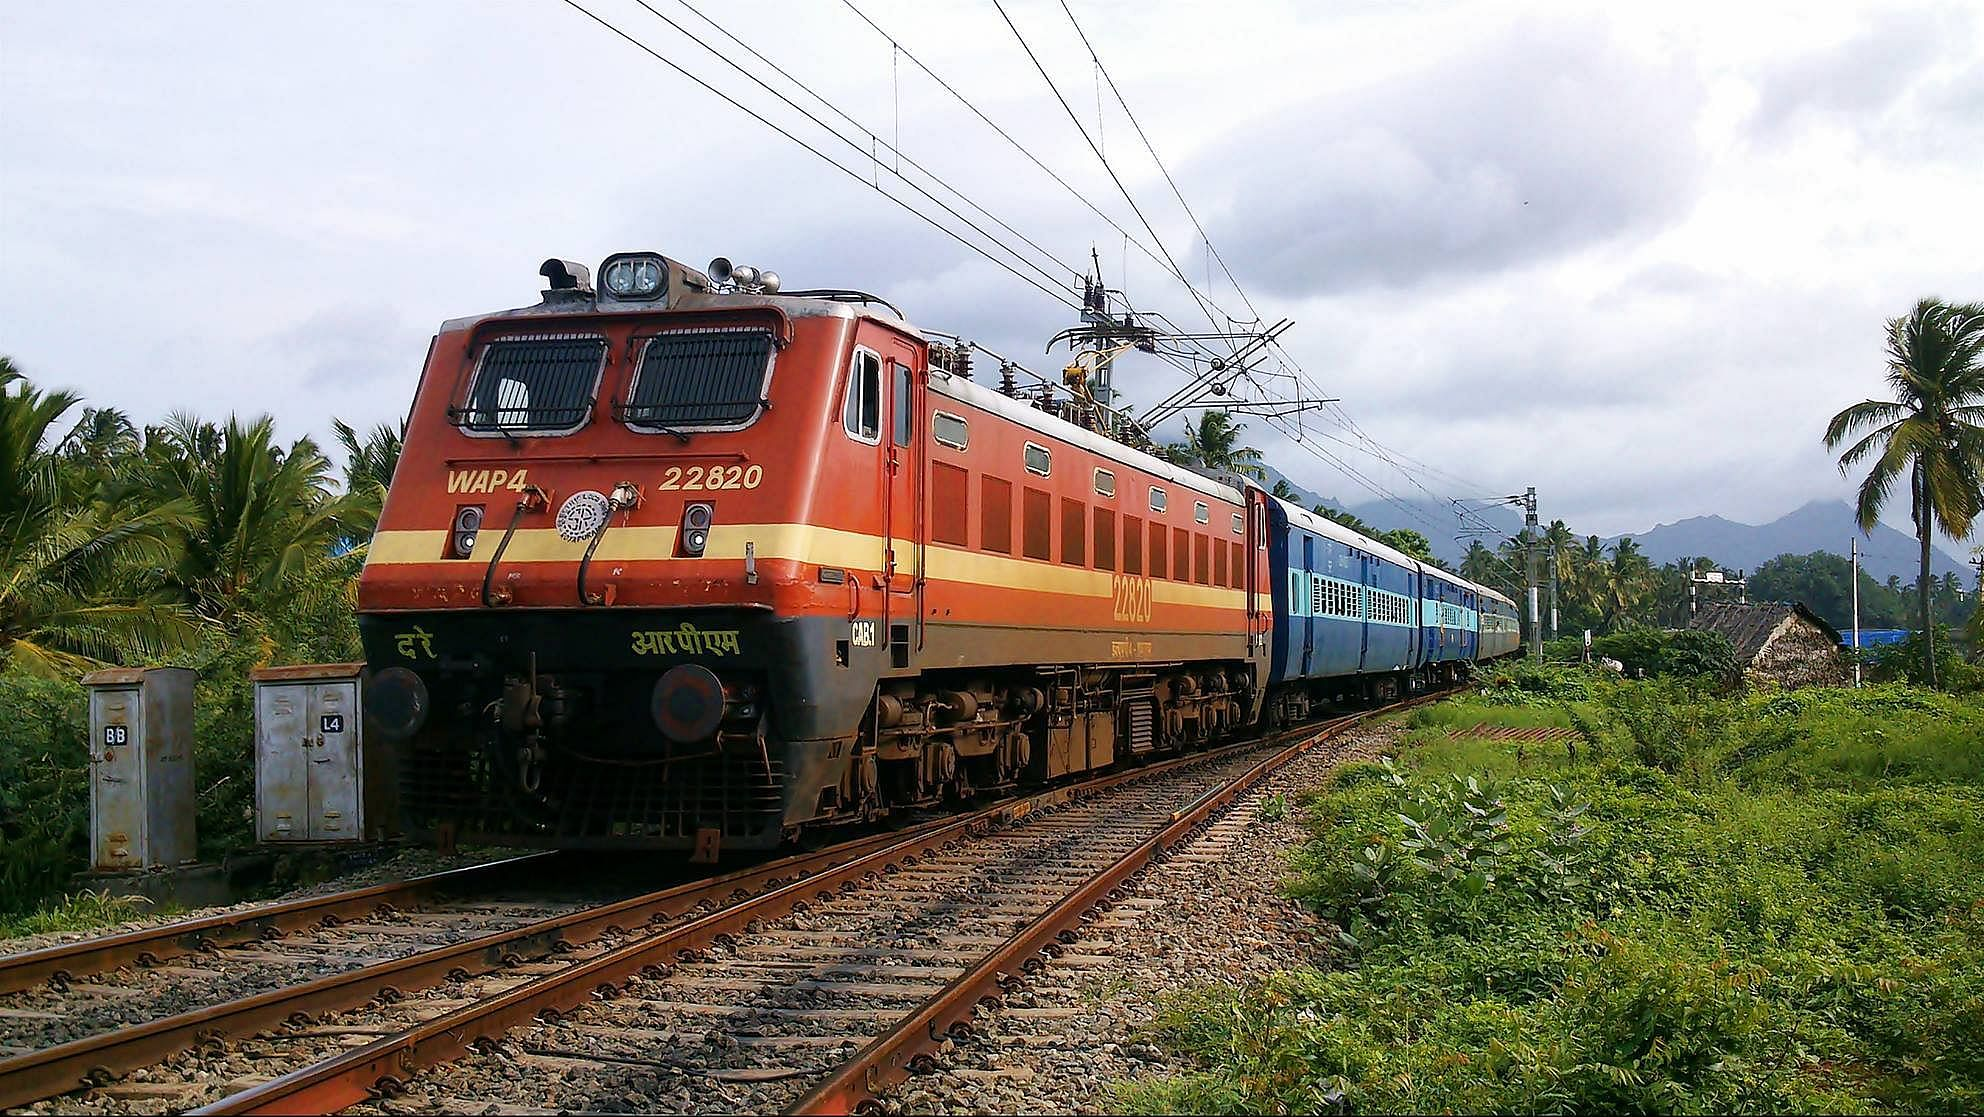 WAP-4_Class_locomotive_of_Indian_Railways